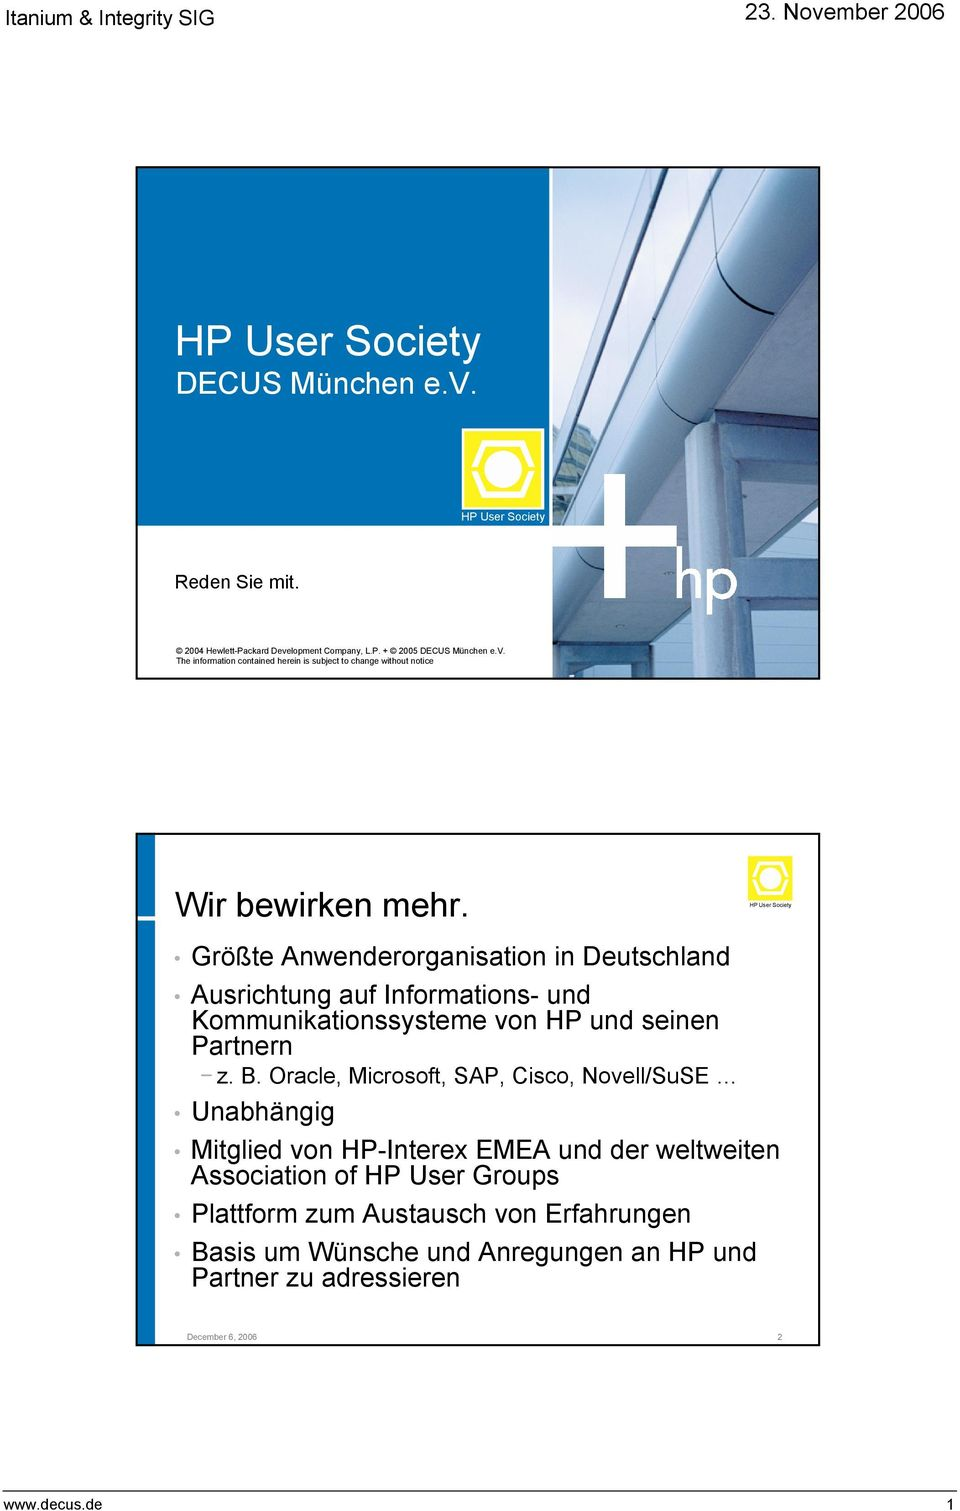 Oracle, Microsoft, SAP, Cisco, Novell/SuSE Unabhängig Mitglied von HP-Interex EMEA und der weltweiten Association of HP User Groups Plattform zum